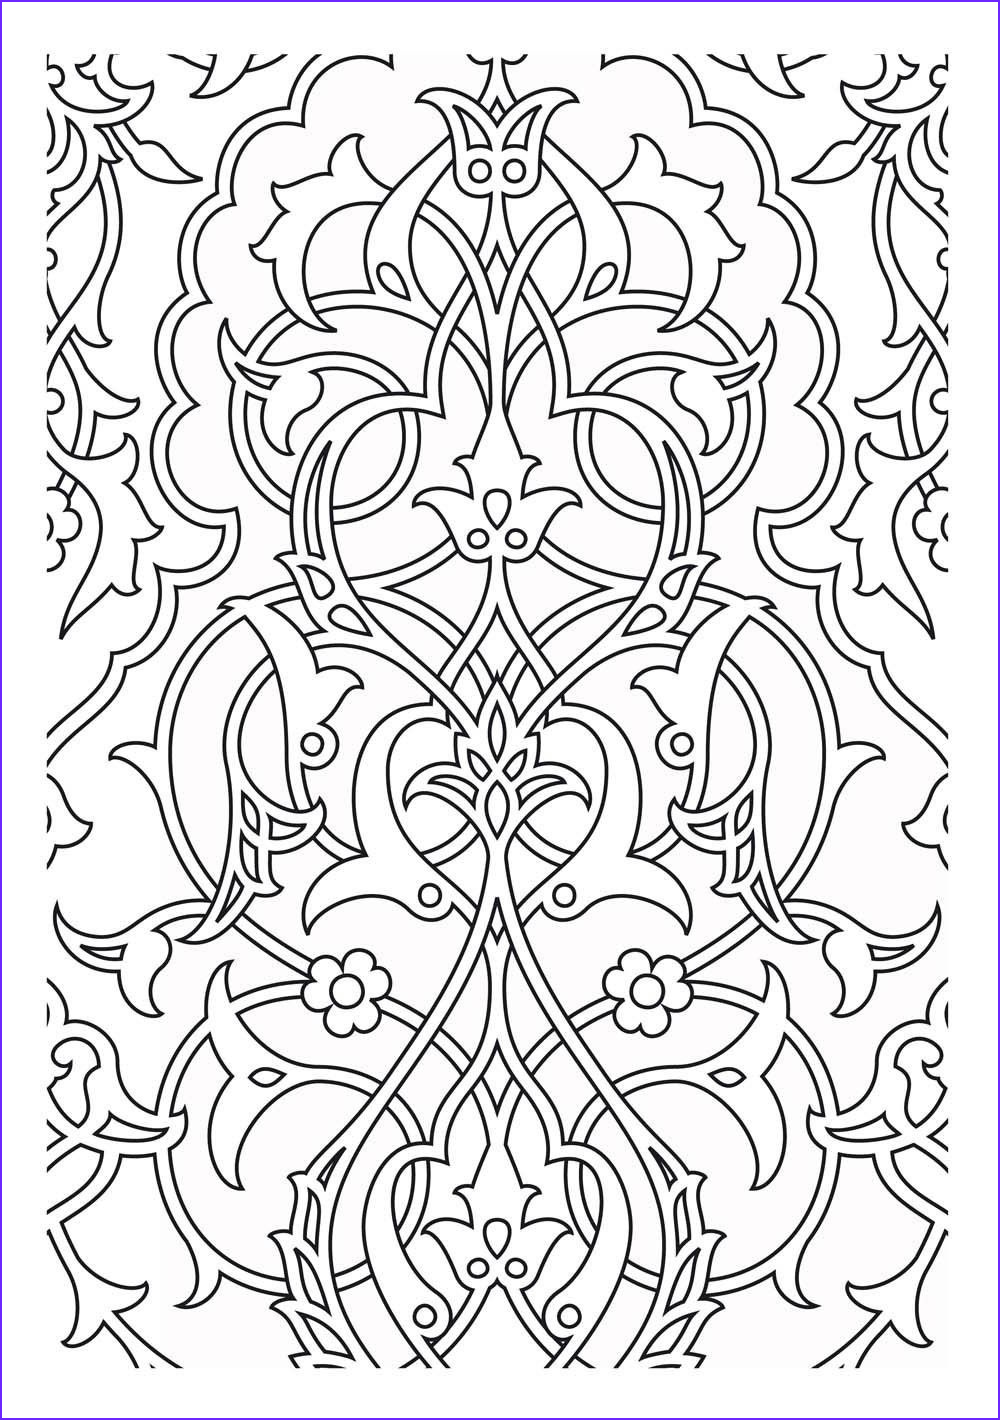 Stress Free Coloring Book Cool Gallery Art Thérapie 100 Coloriages Anti Stress Amazon